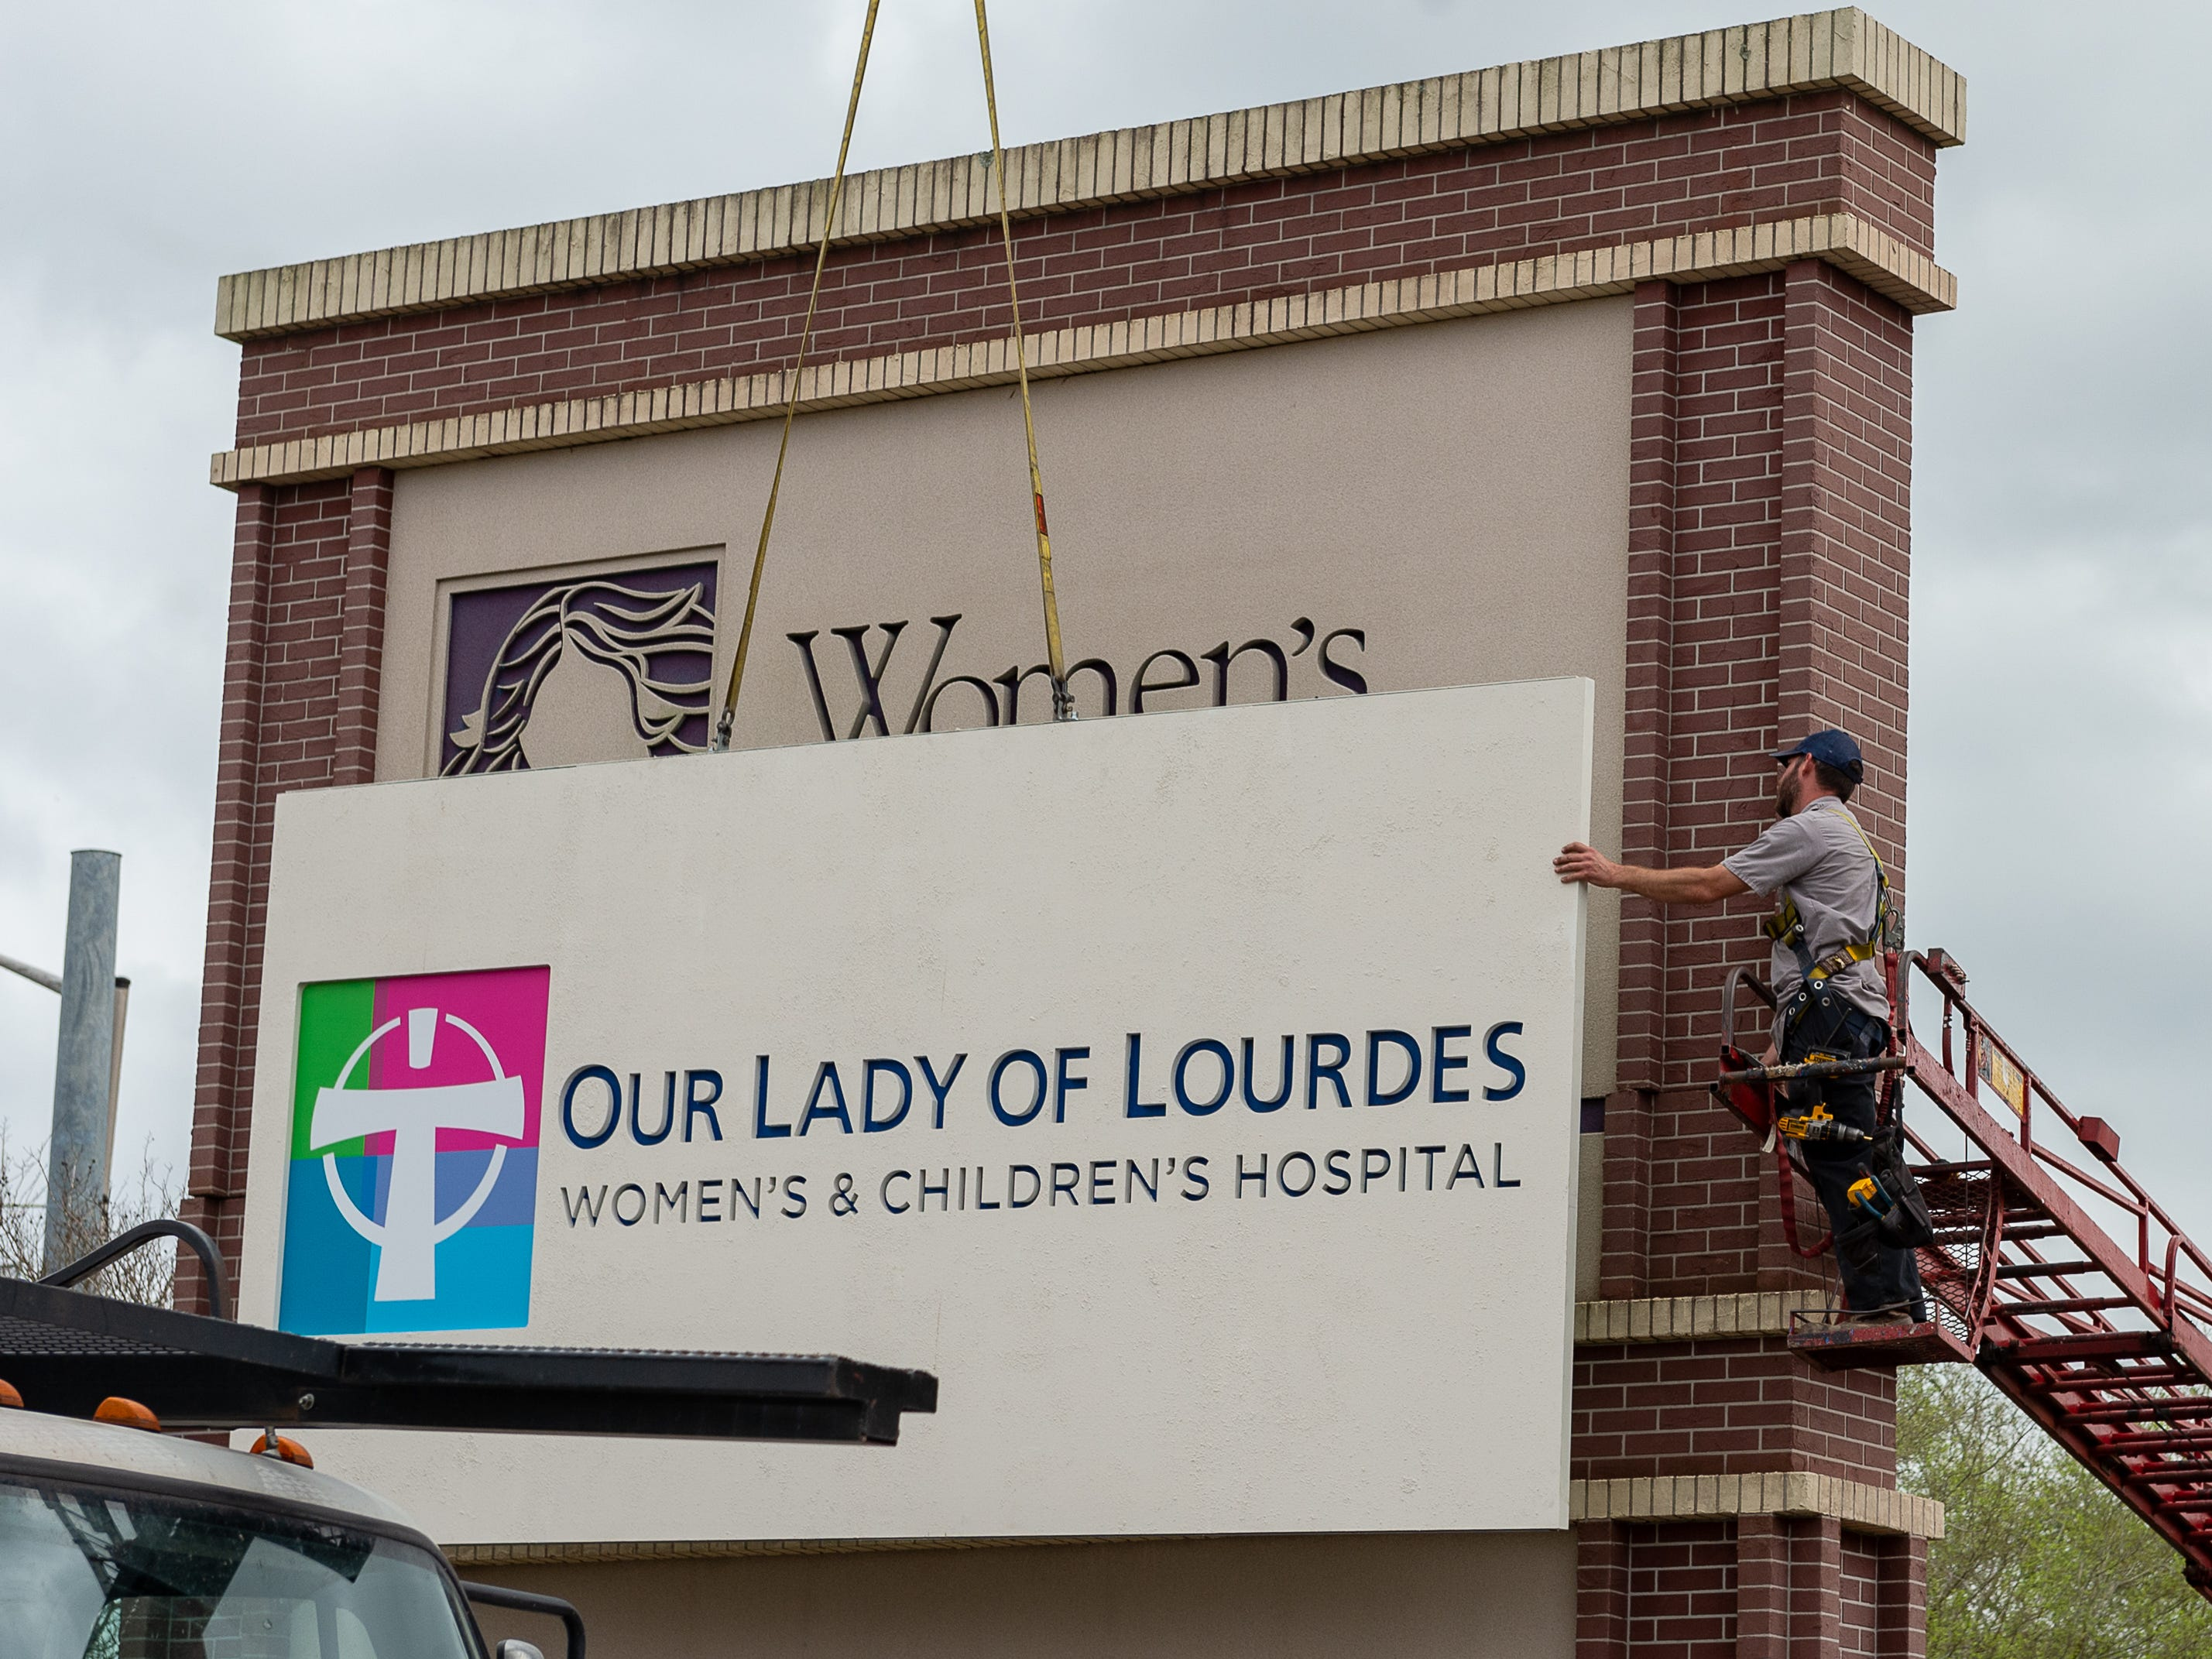 Crews replace the monument sign at the Ambassador Caffery Parkway main entrance to the Our Lady of Lourdes Women's & Children's Hospital grounds on Friday, March 1.